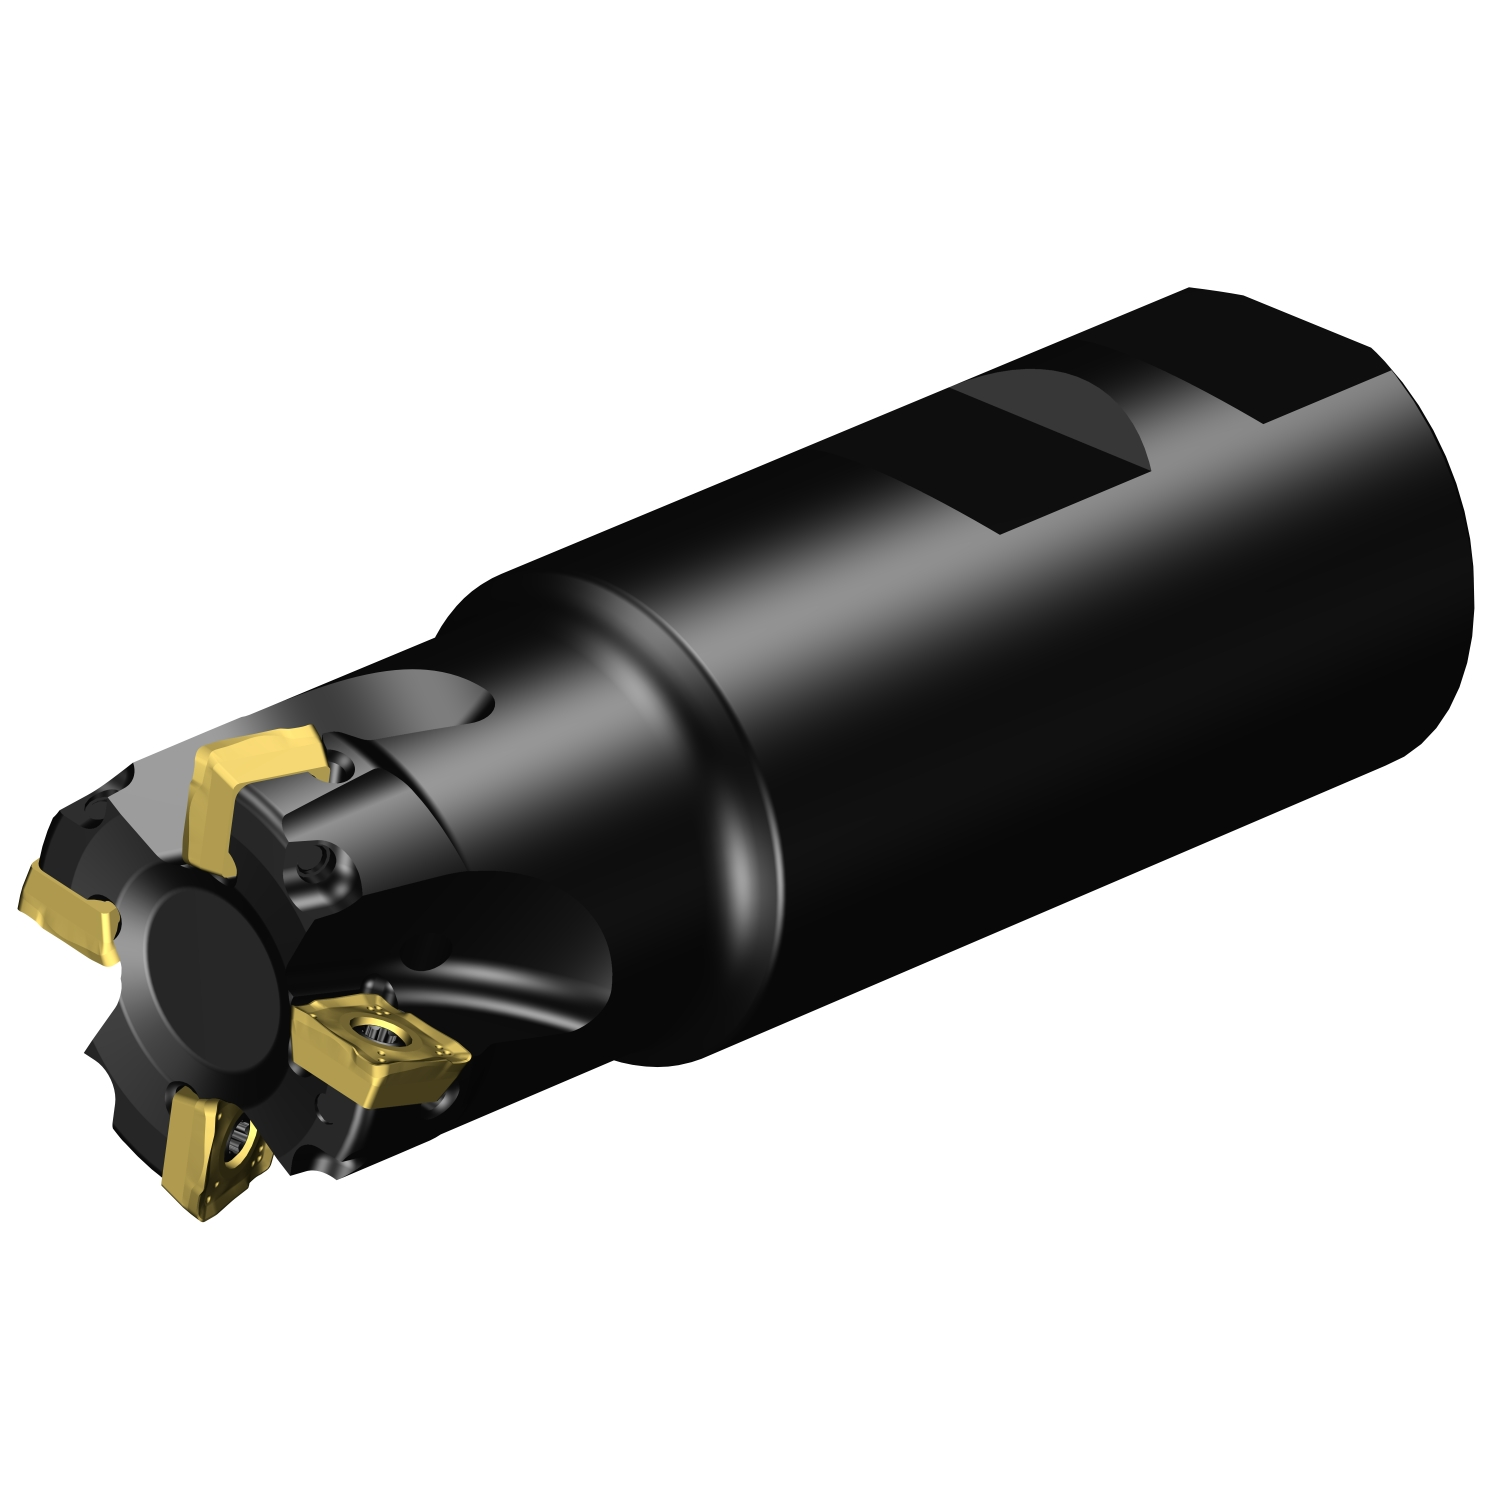 A490-032M32-08M - Holders, Adapters & Heads